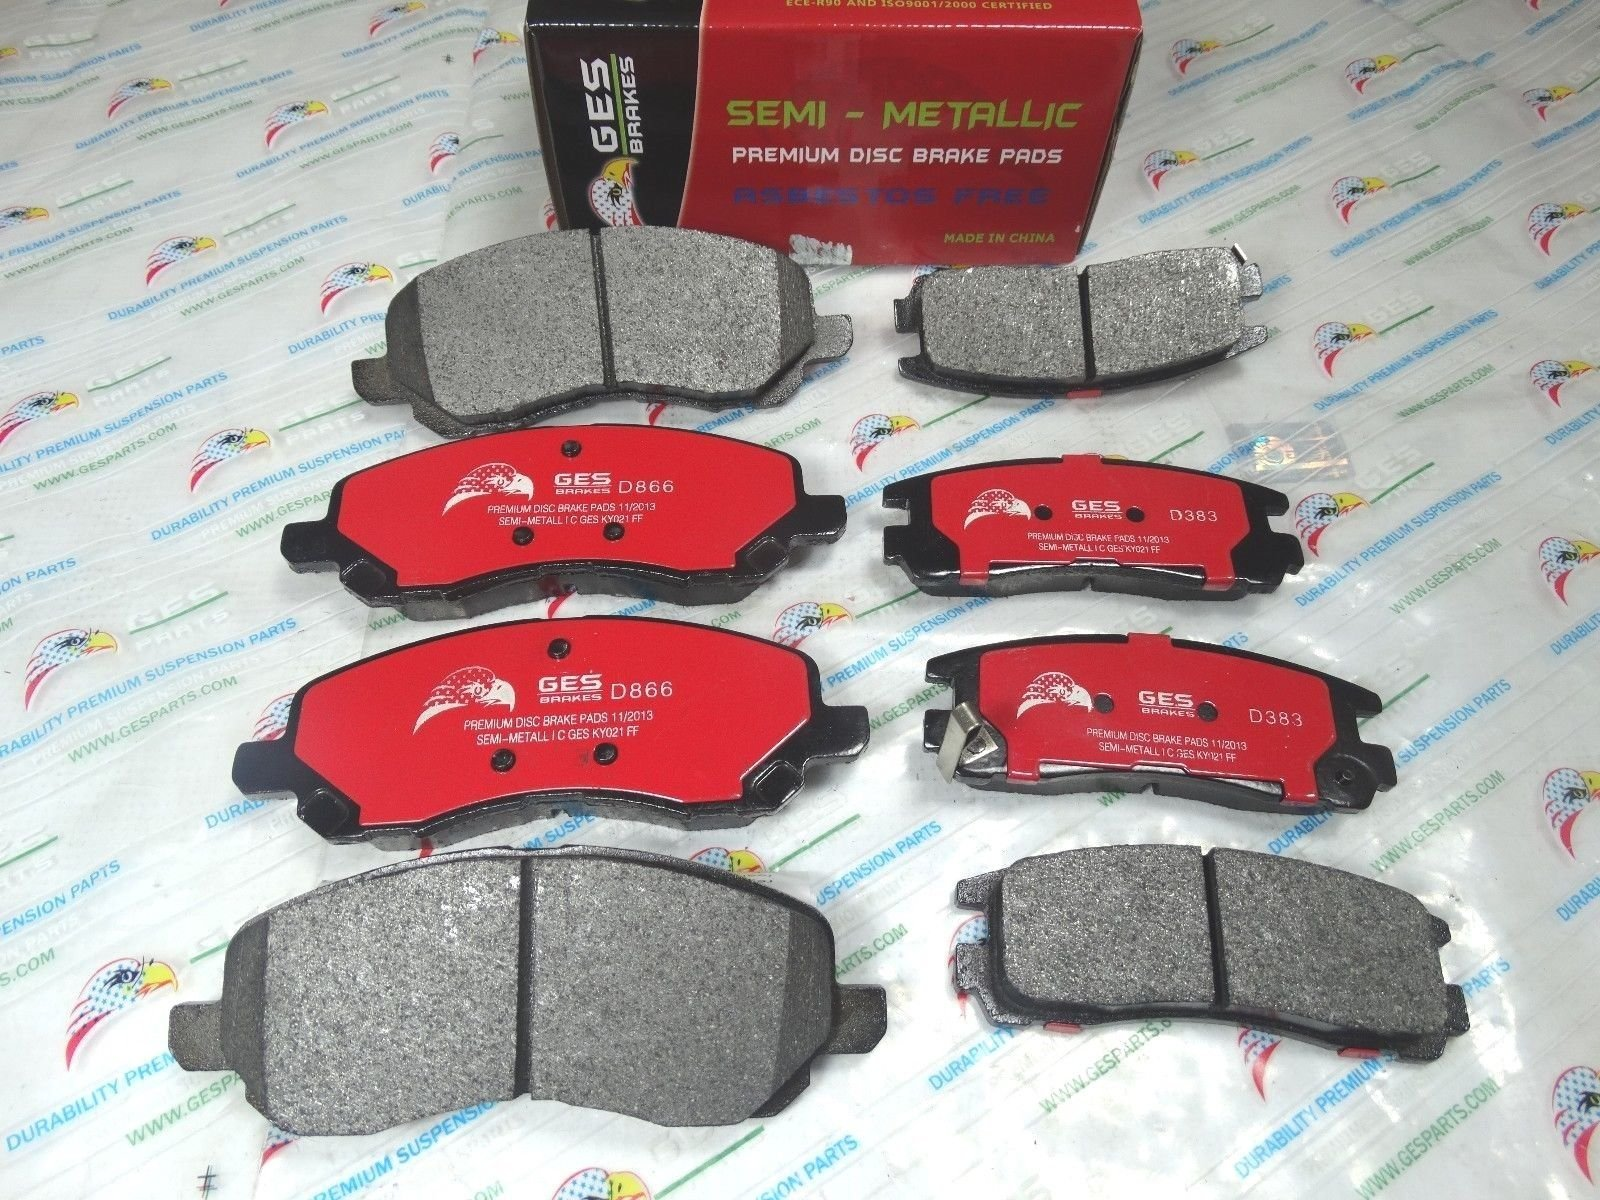 NEW 2 Sets Front & Rear Brake Pads Mitsubishi Eclipse Galant D866 & D383 by GES PARTS (Image #4)